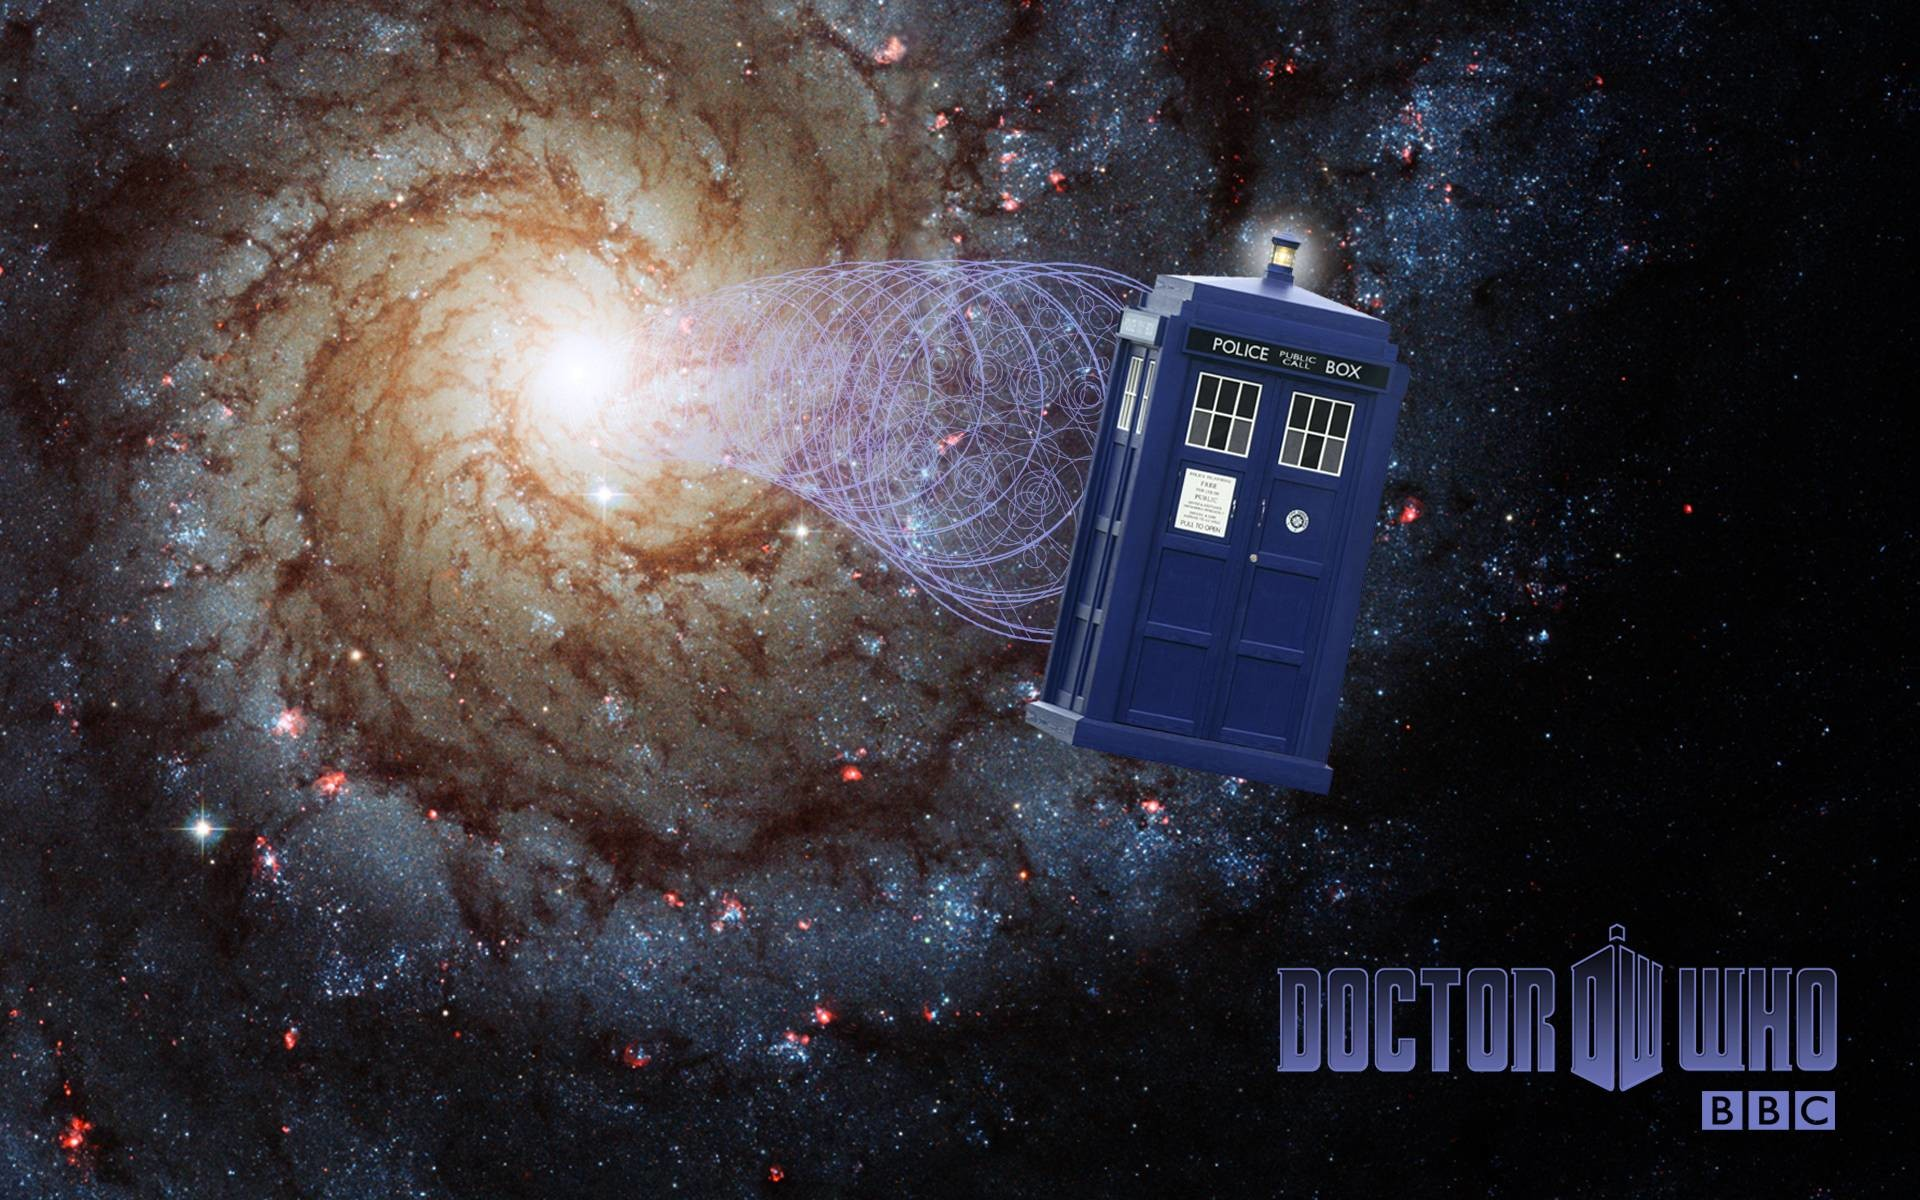 Doctor who wallpaper 70 images 1920x1080 minimalistic text tardis typography doctor who whovian wallpaper would also make a great t shirt voltagebd Image collections